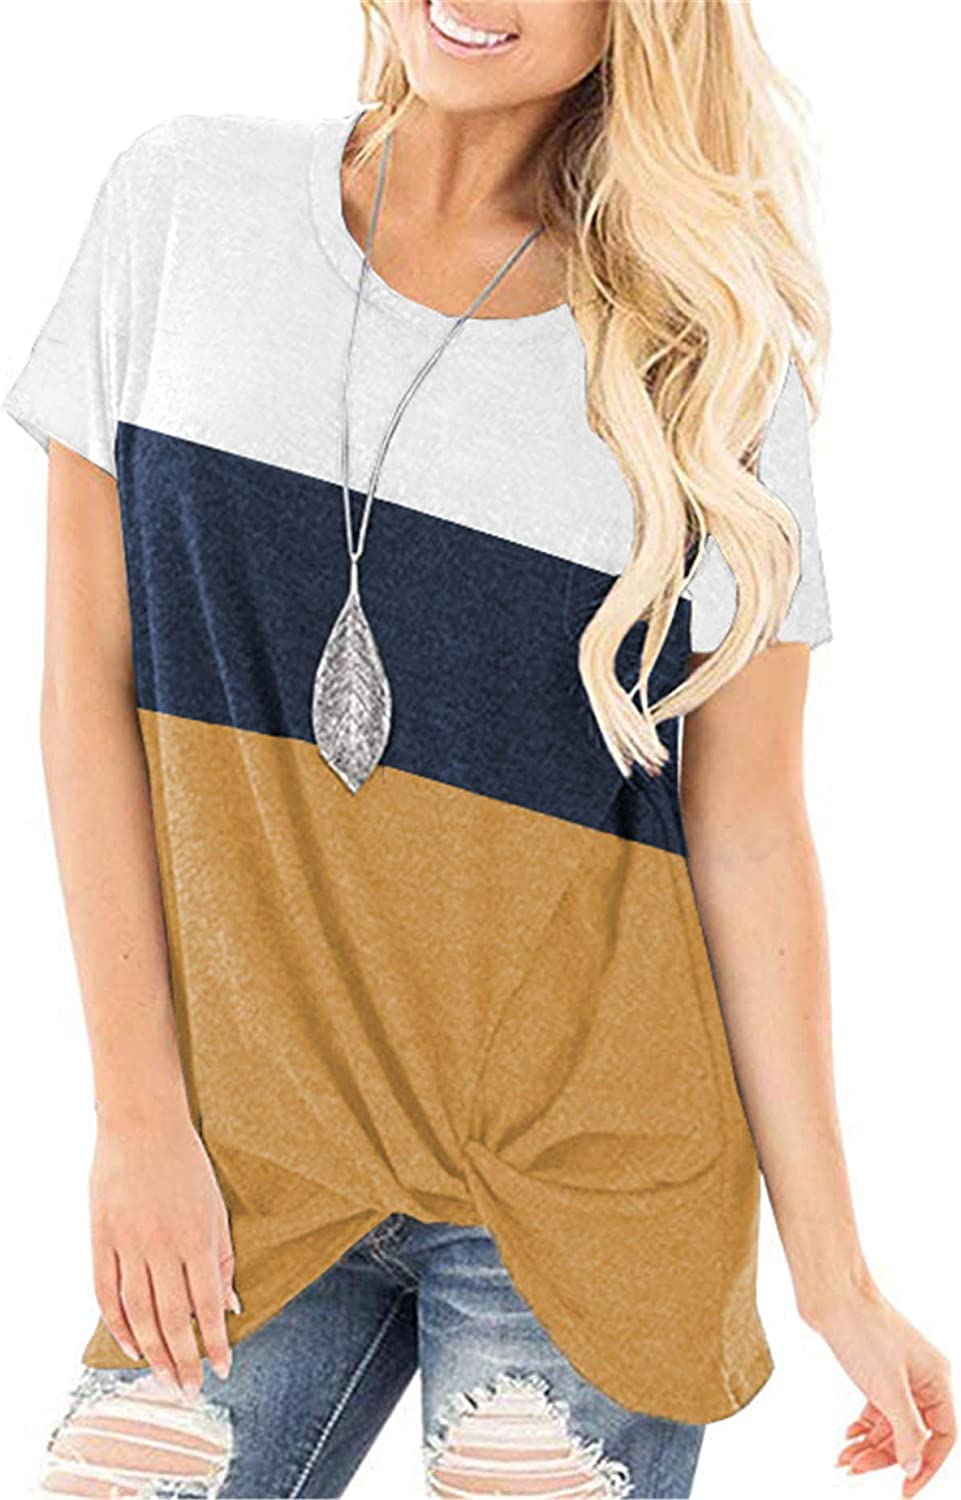 Short Sleeve Tops for Women Side Knotted Tie at The Bottom Tshirts Wash Well Loose Fit Blouse